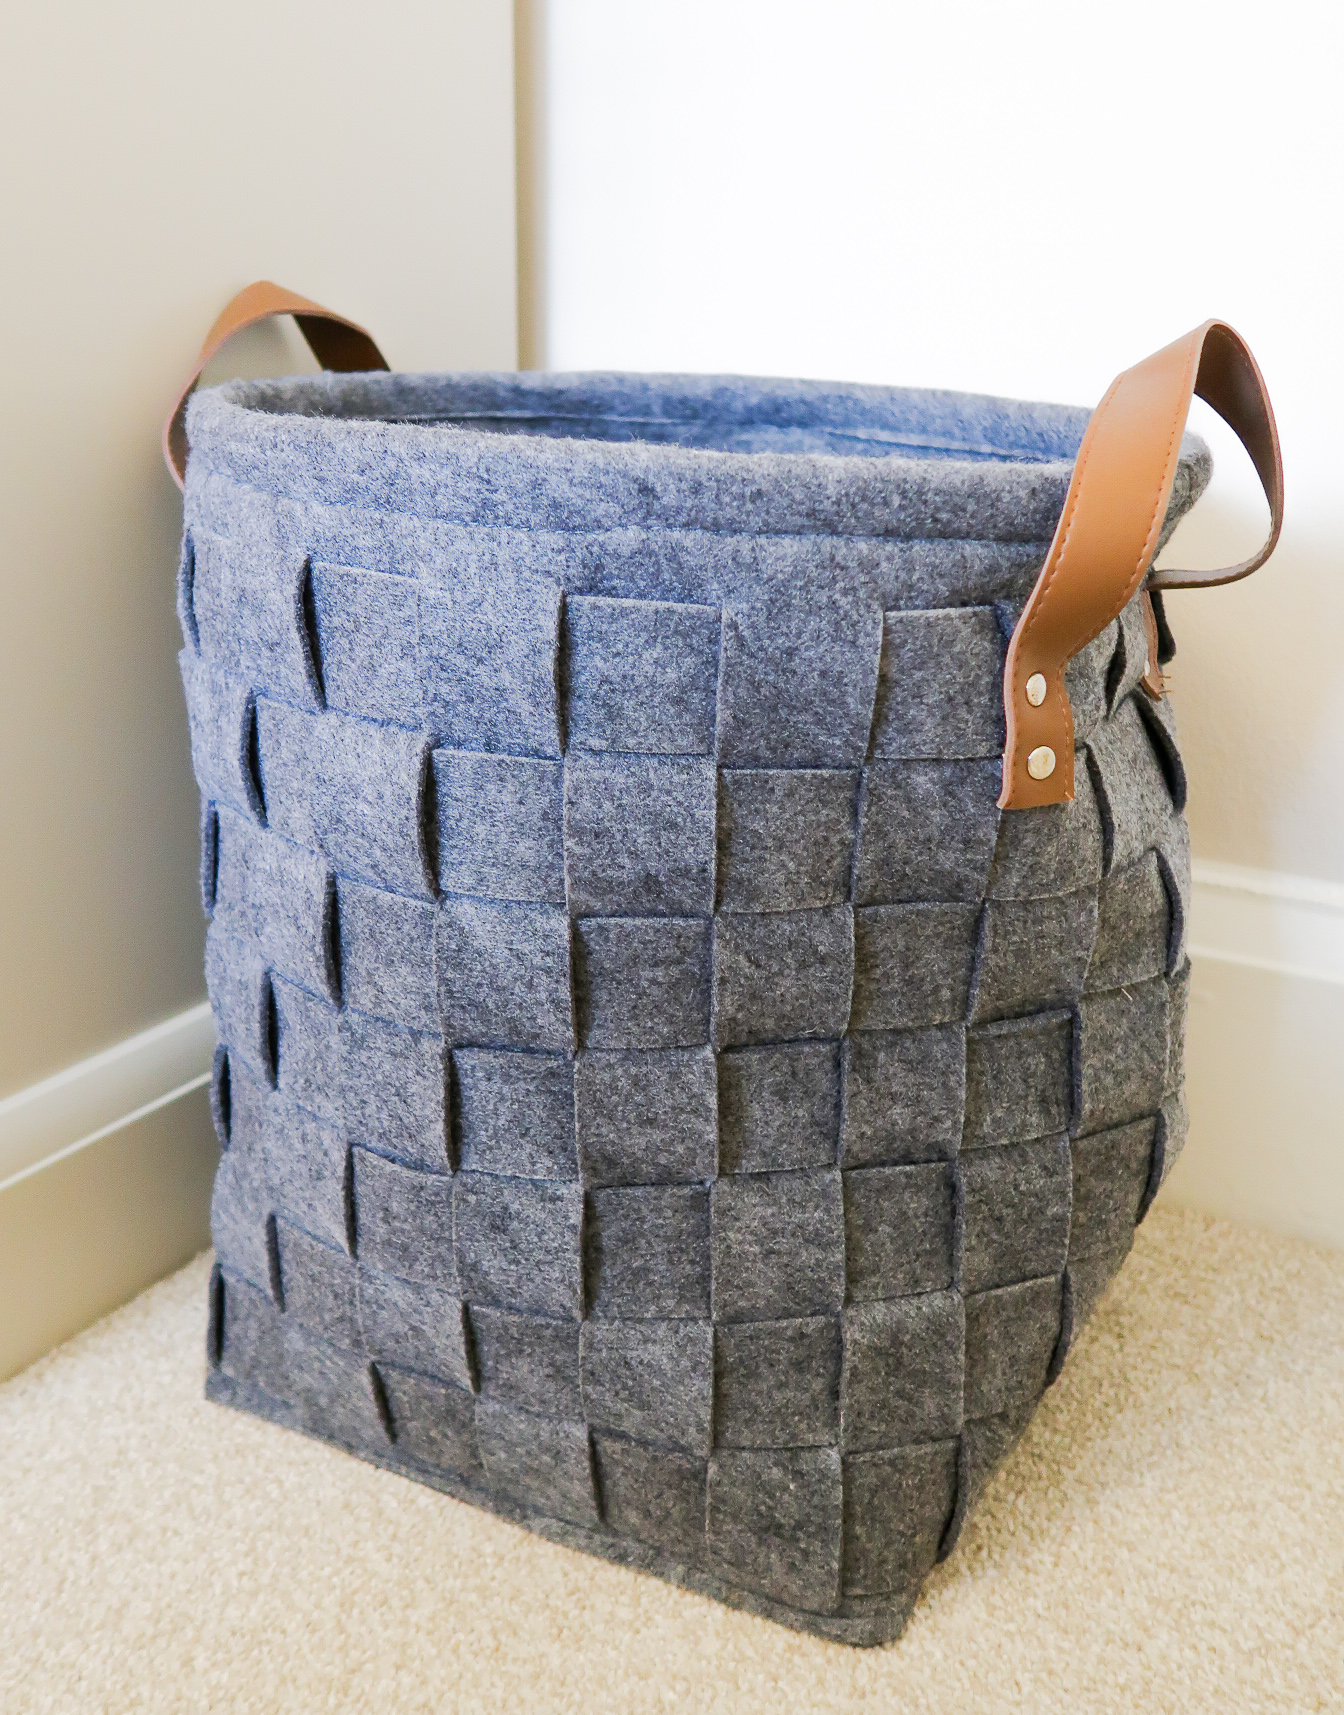 making our house a home baby number three nursery makeover room to grow felt weave basket leather brown handles toy storage solution